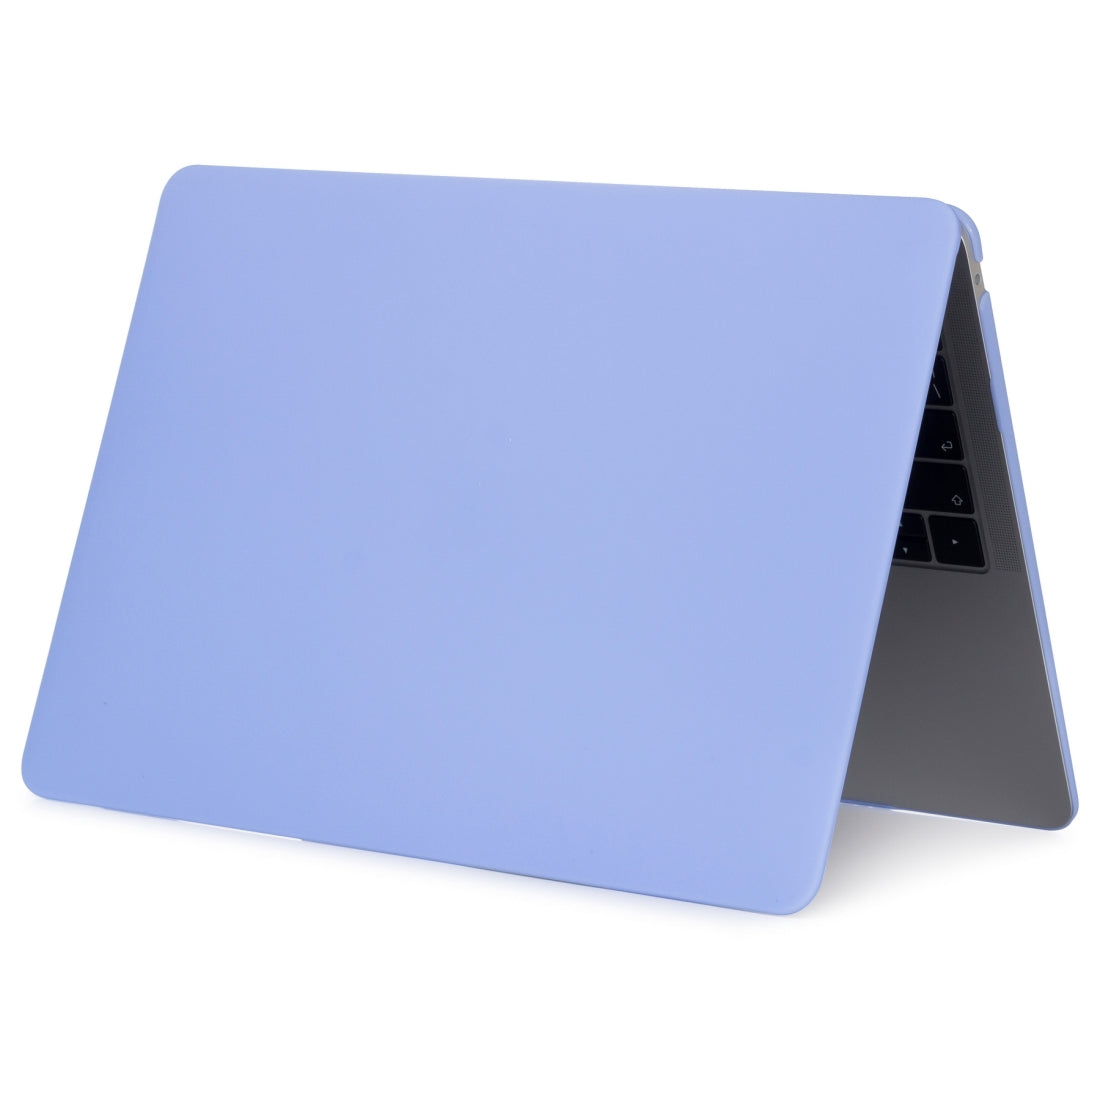 Laptop Matte Style Protective Case for MacBook Air 13.3 inch A1932 (2018)(Blue)